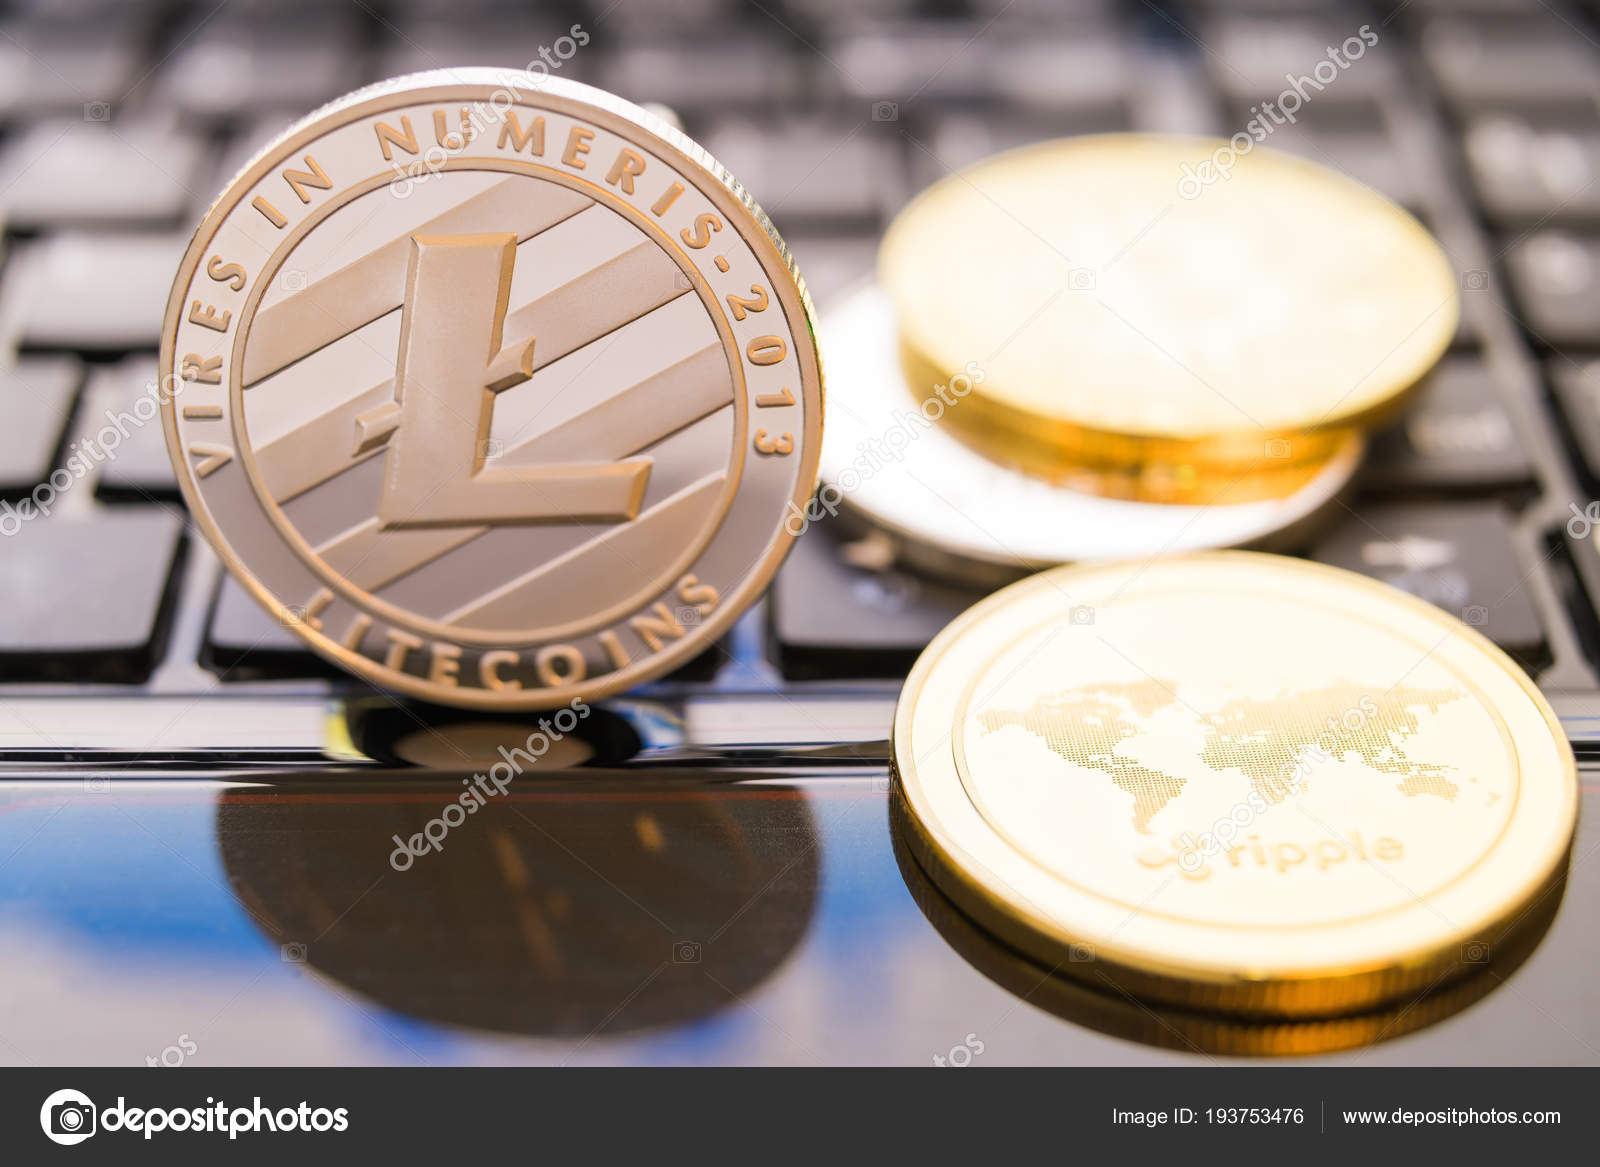 Cryptocurrency coins - Litecoin, Bitcoin, Ethereum, Ripple